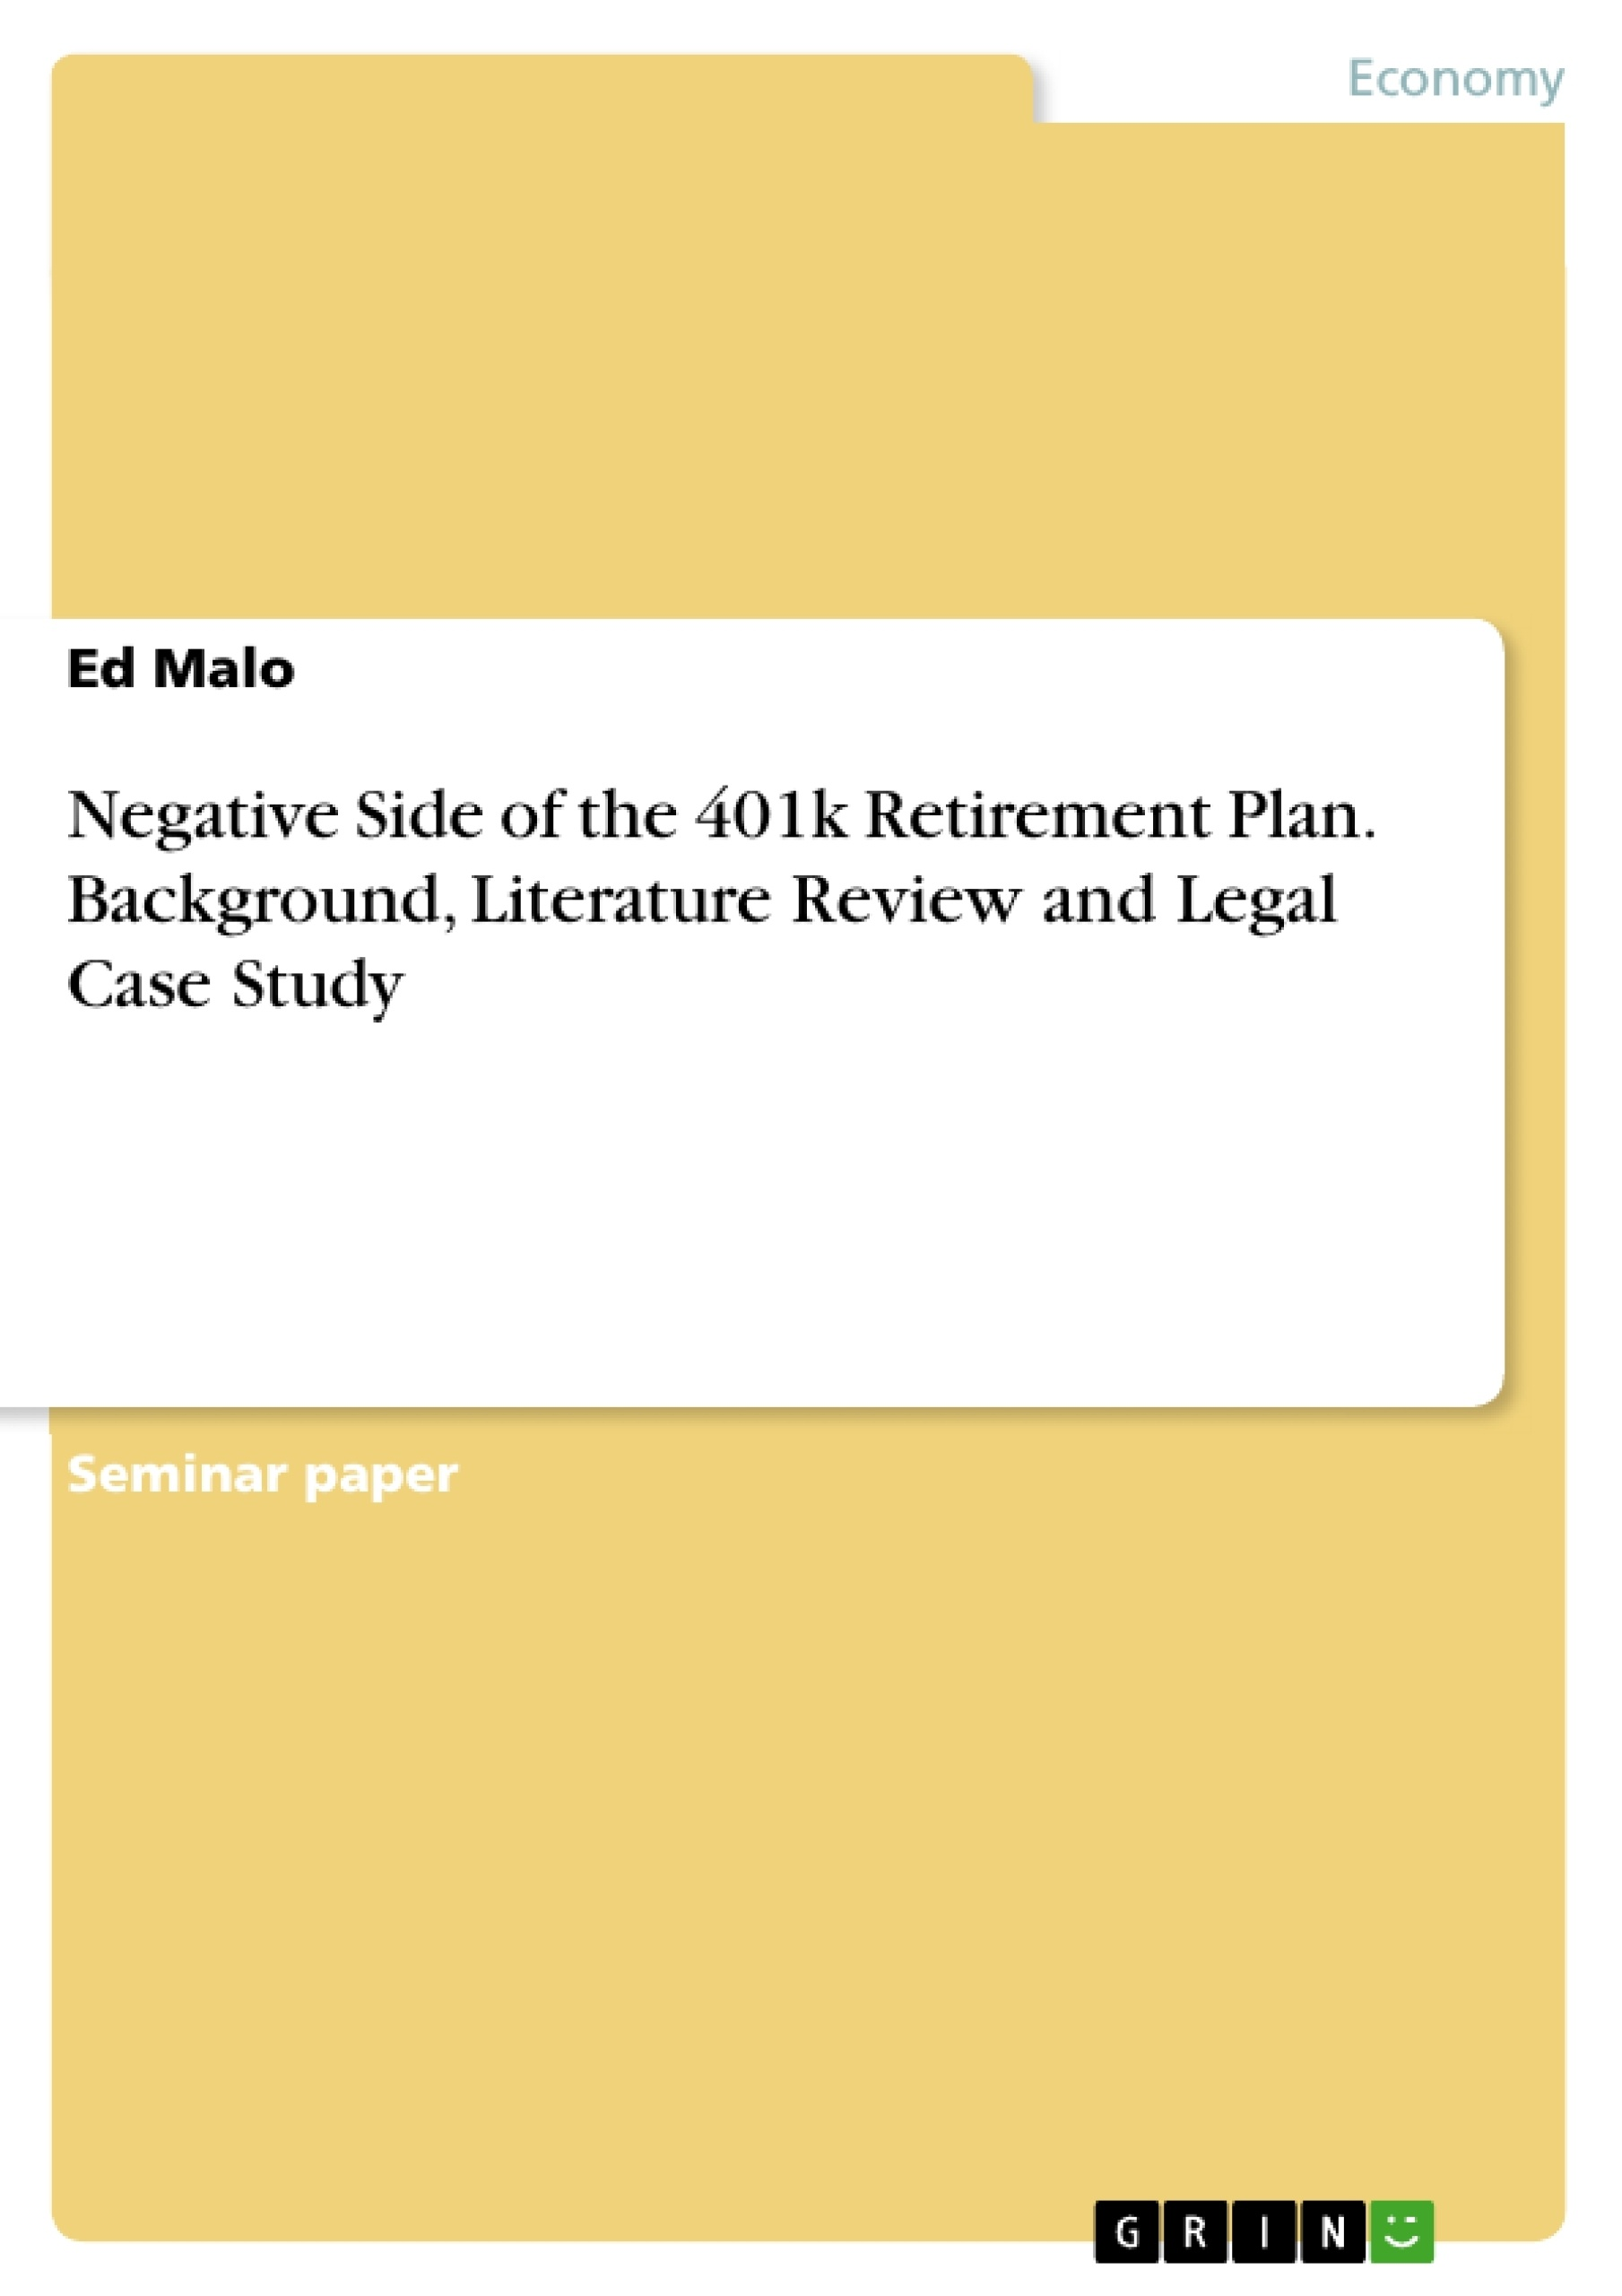 Title: Negative Side of the 401k Retirement Plan. Background, Literature Review and Legal Case Study